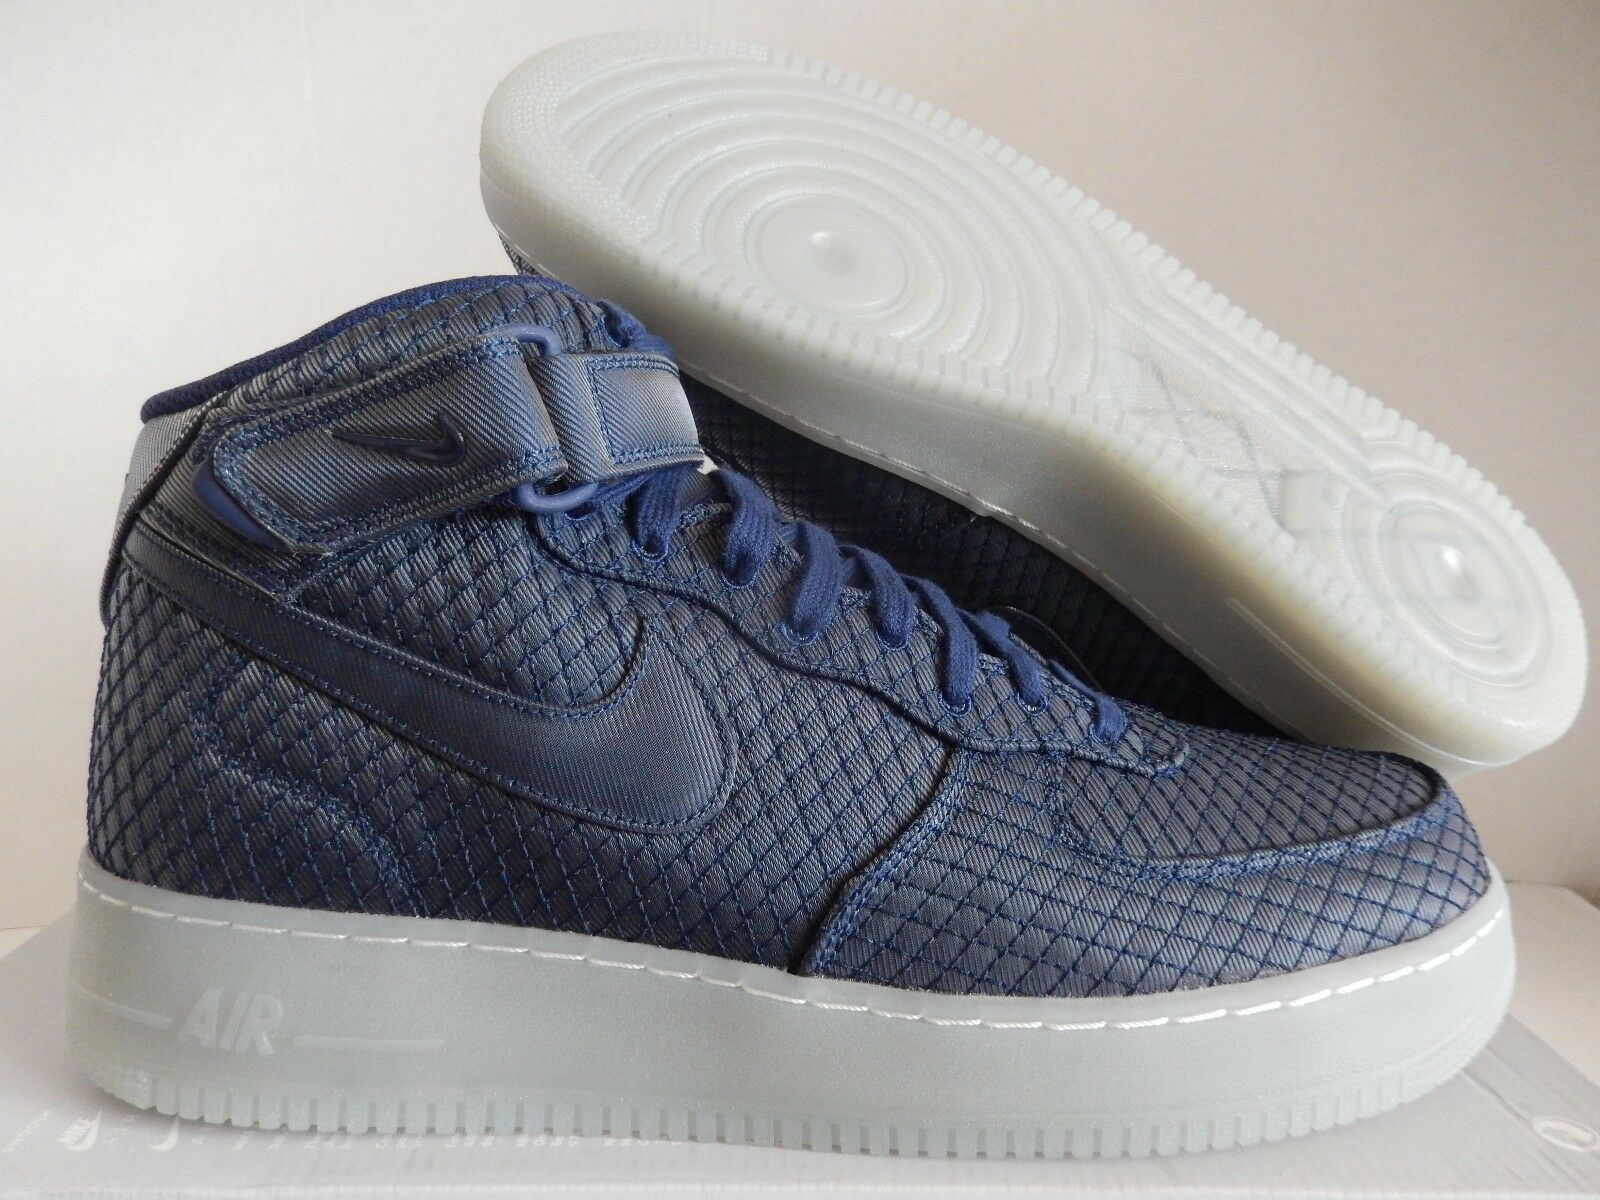 Special limited time NIKE AIR FORCE 1 MID 07 LV8 BINARY BLUE-BINARY BLUE Price reduction